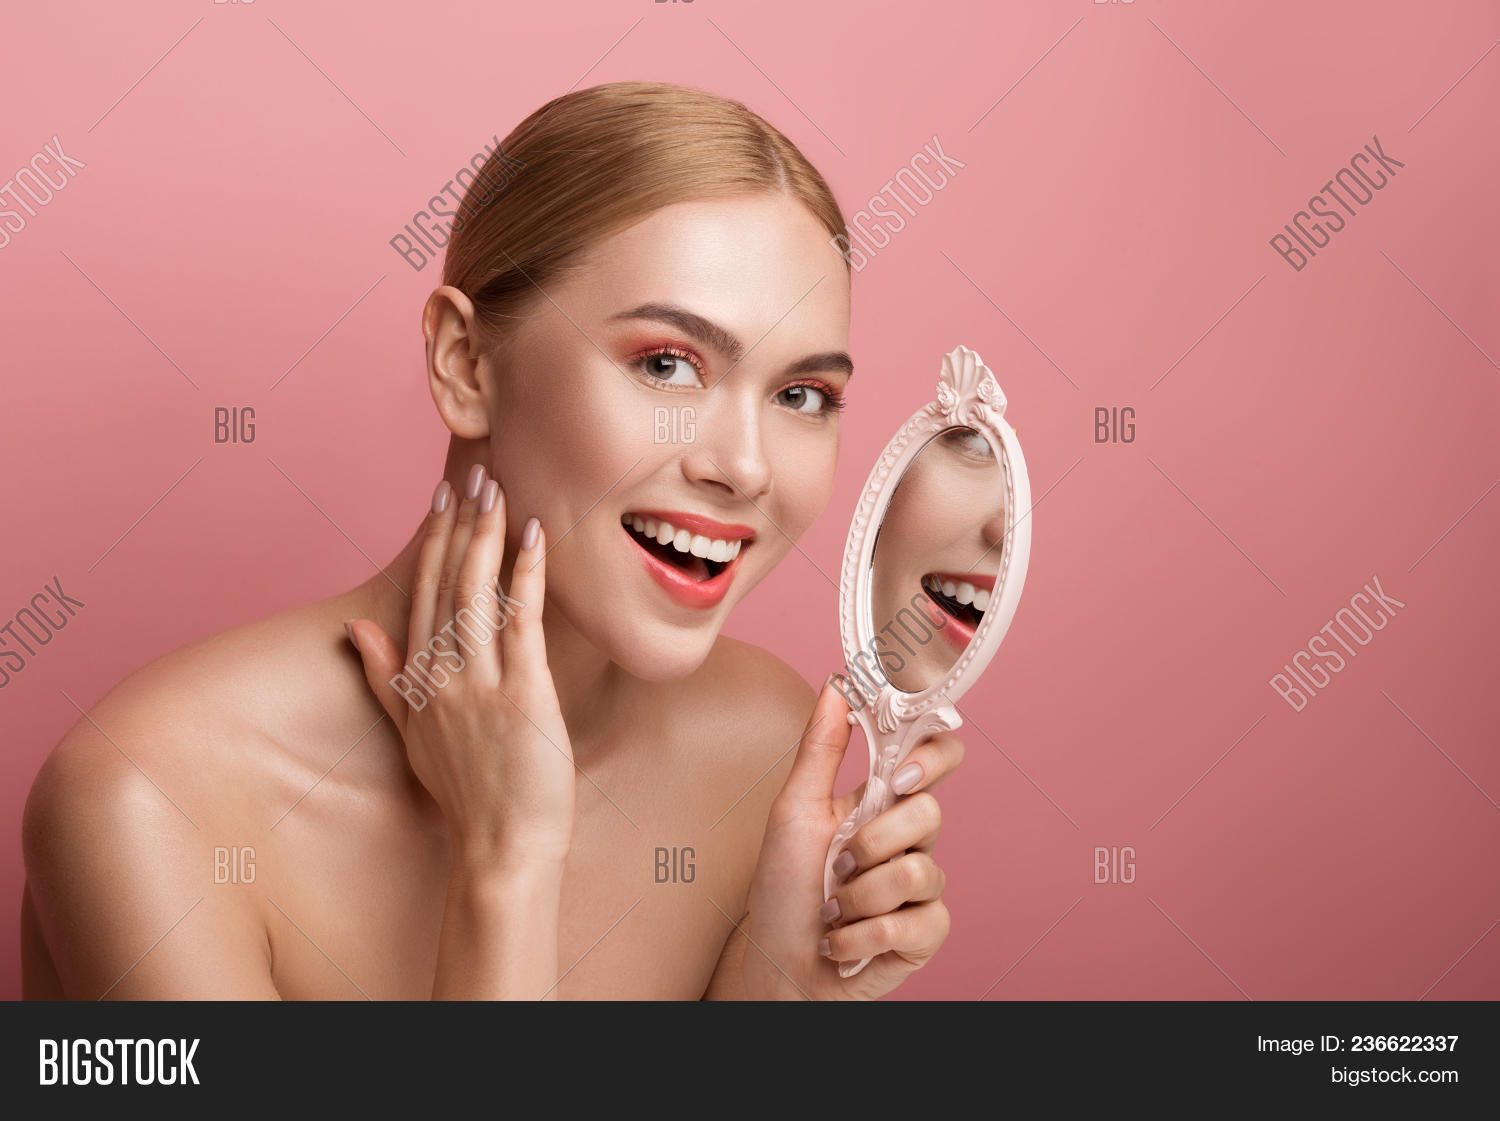 Joy Glass Naked portrait groomed naked image & photo (free trial) | bigstock